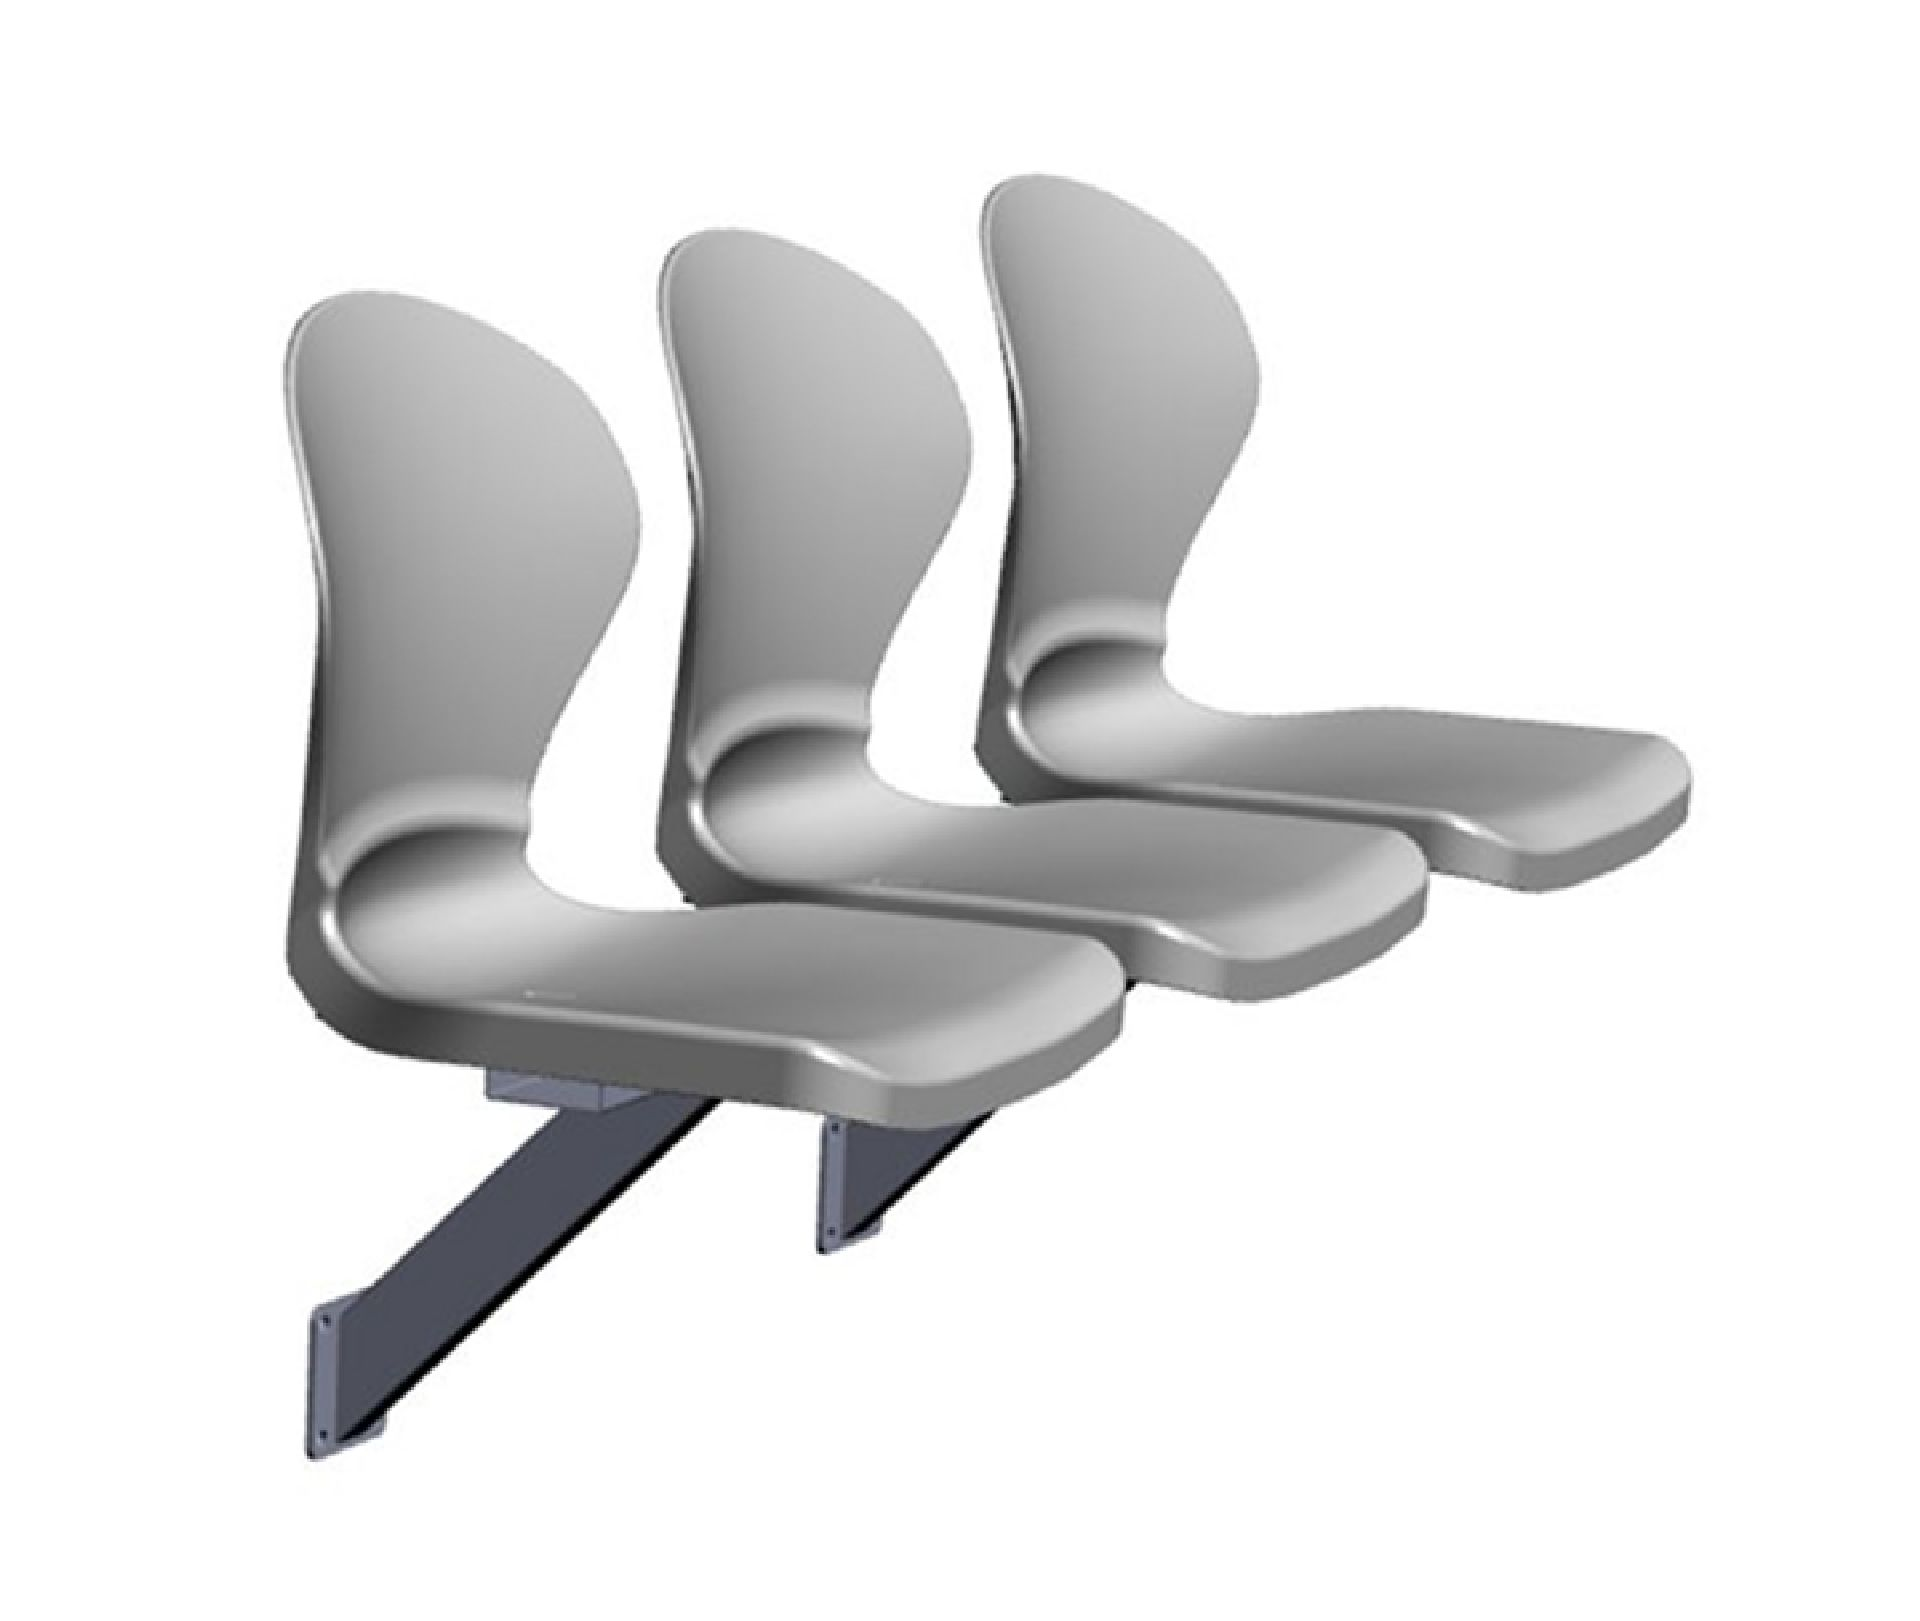 mine_backrest_monoblock_copolymer_pp_stadium_chair_seatorium_20